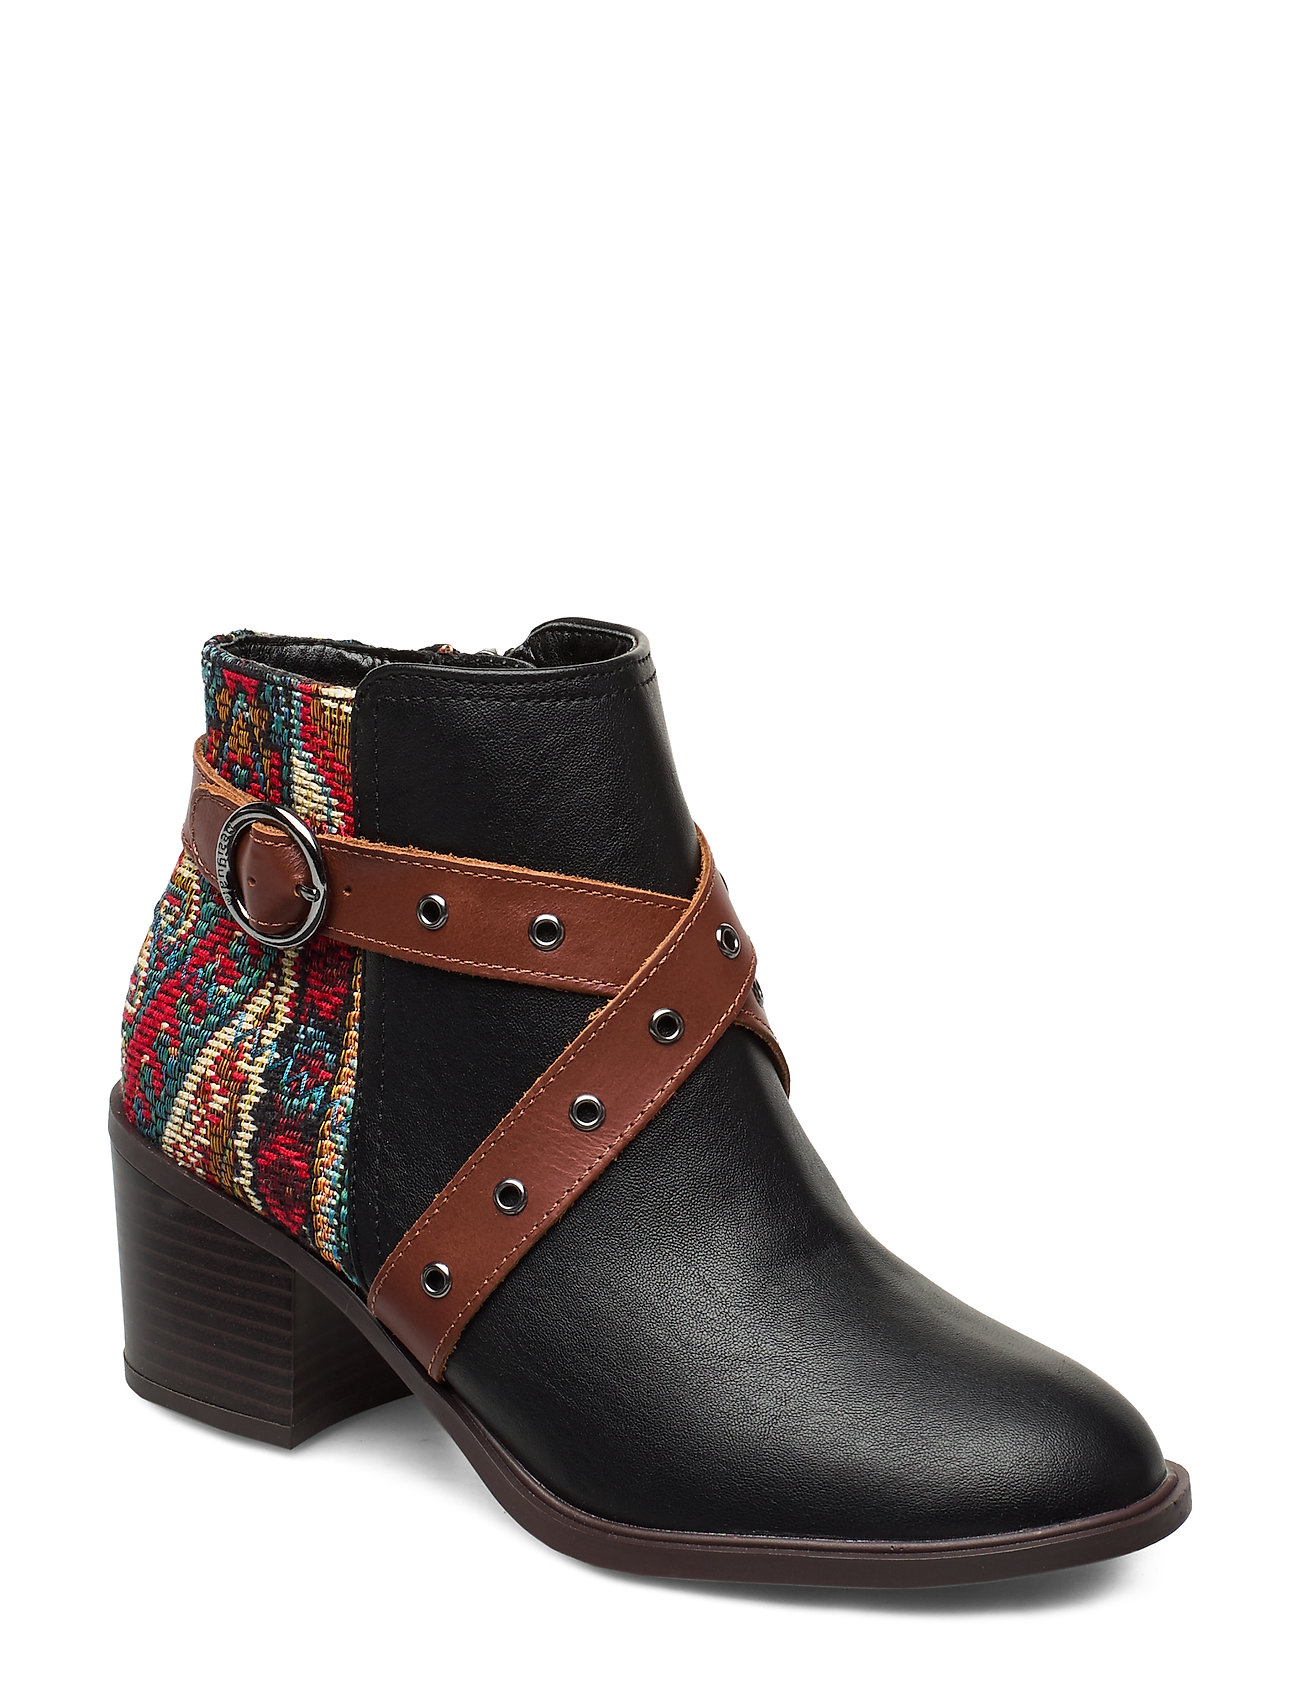 DESIGUAL Shoes Alaska Tapestry Shoes Boots Ankle Boots Ankle Boots With Heel Schwarz DESIGUAL SHOES